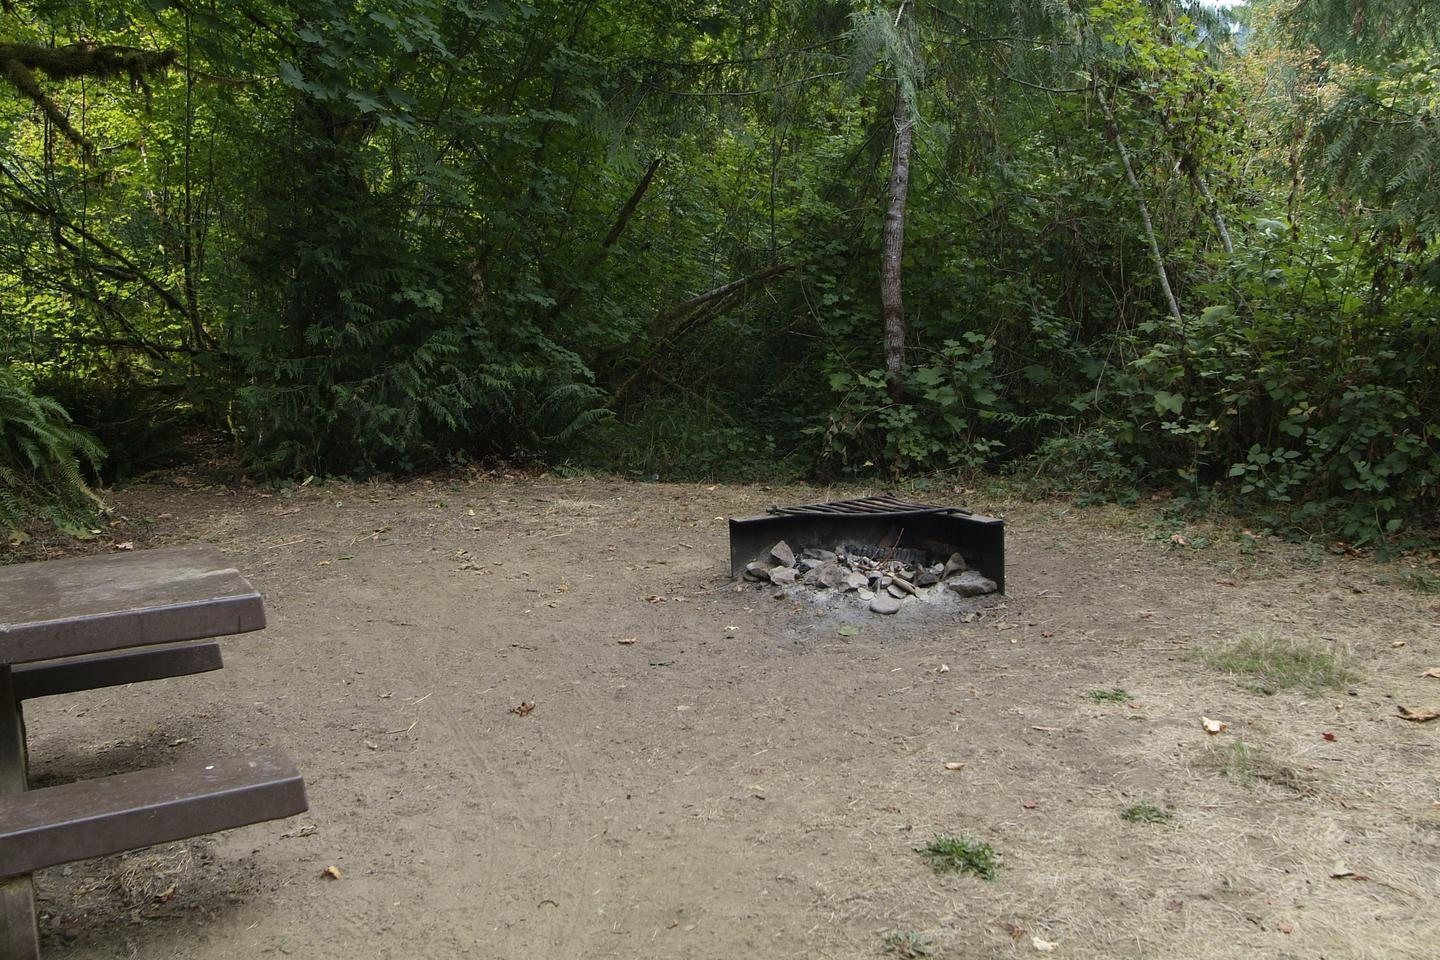 Fire ring for camp site 23. Camp site 23 fire ring.